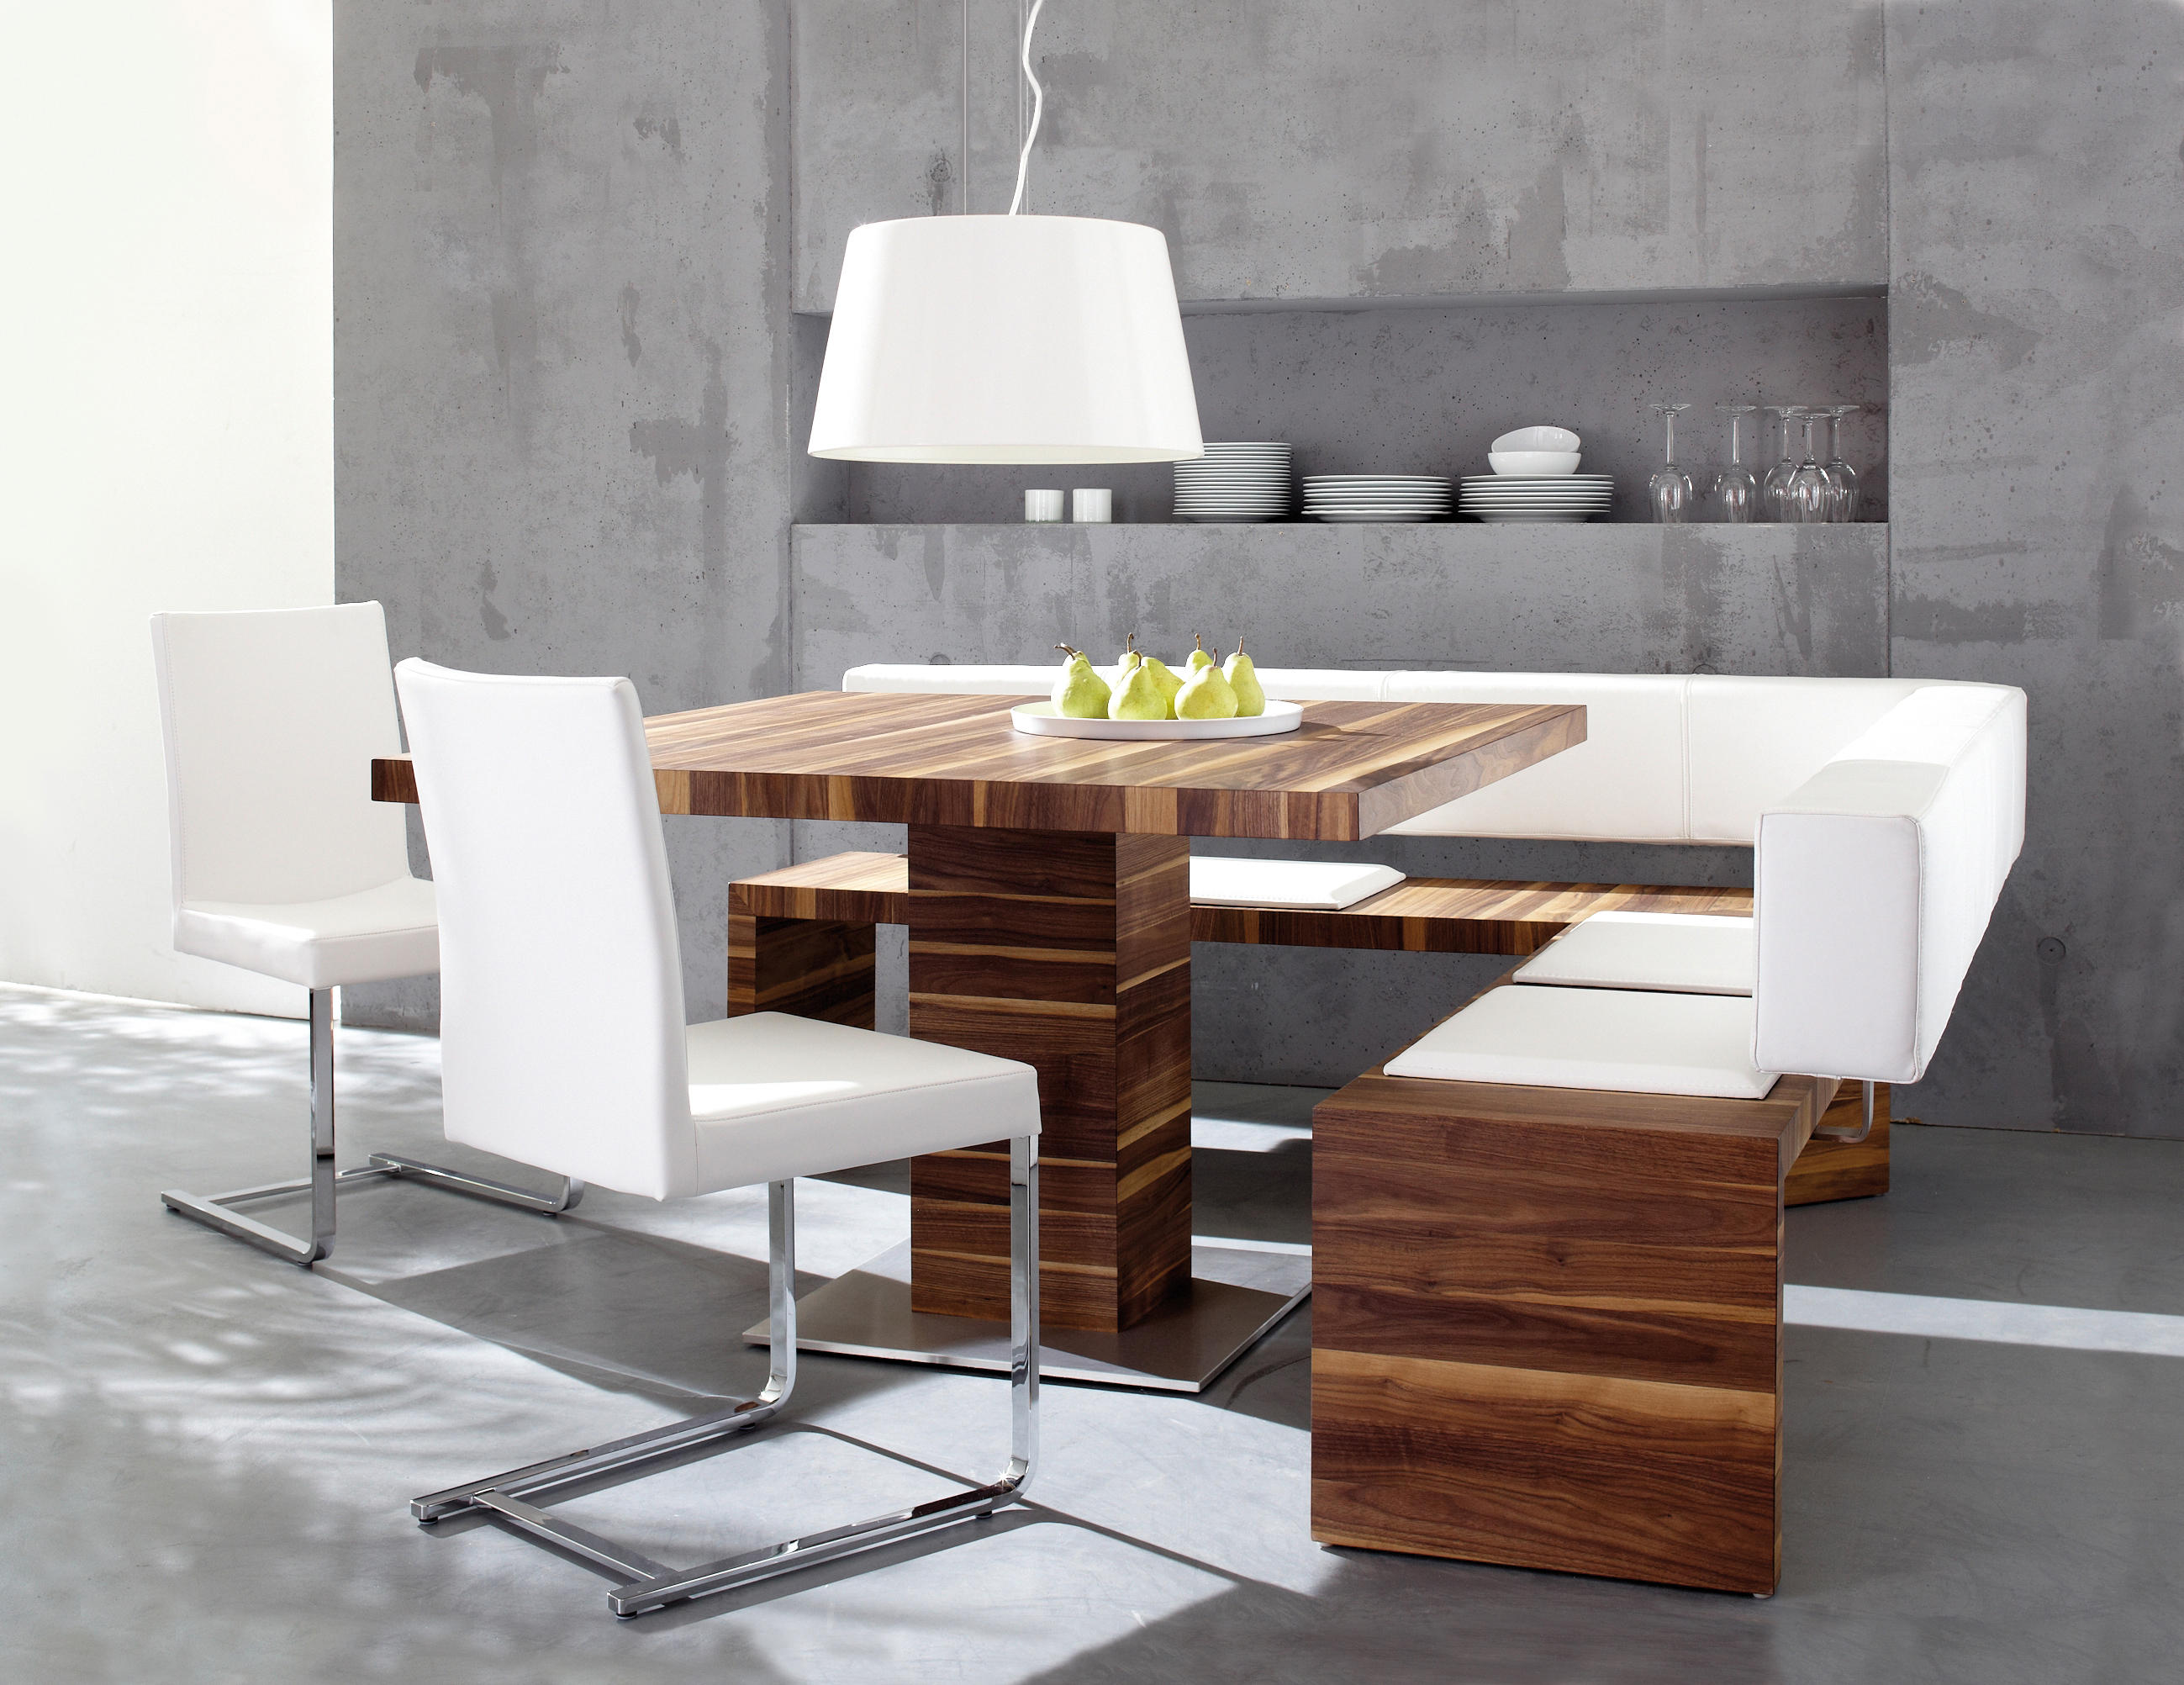 Esszimmer Gottmadingen Scala 08 Dining Tables From Schulte Design Architonic